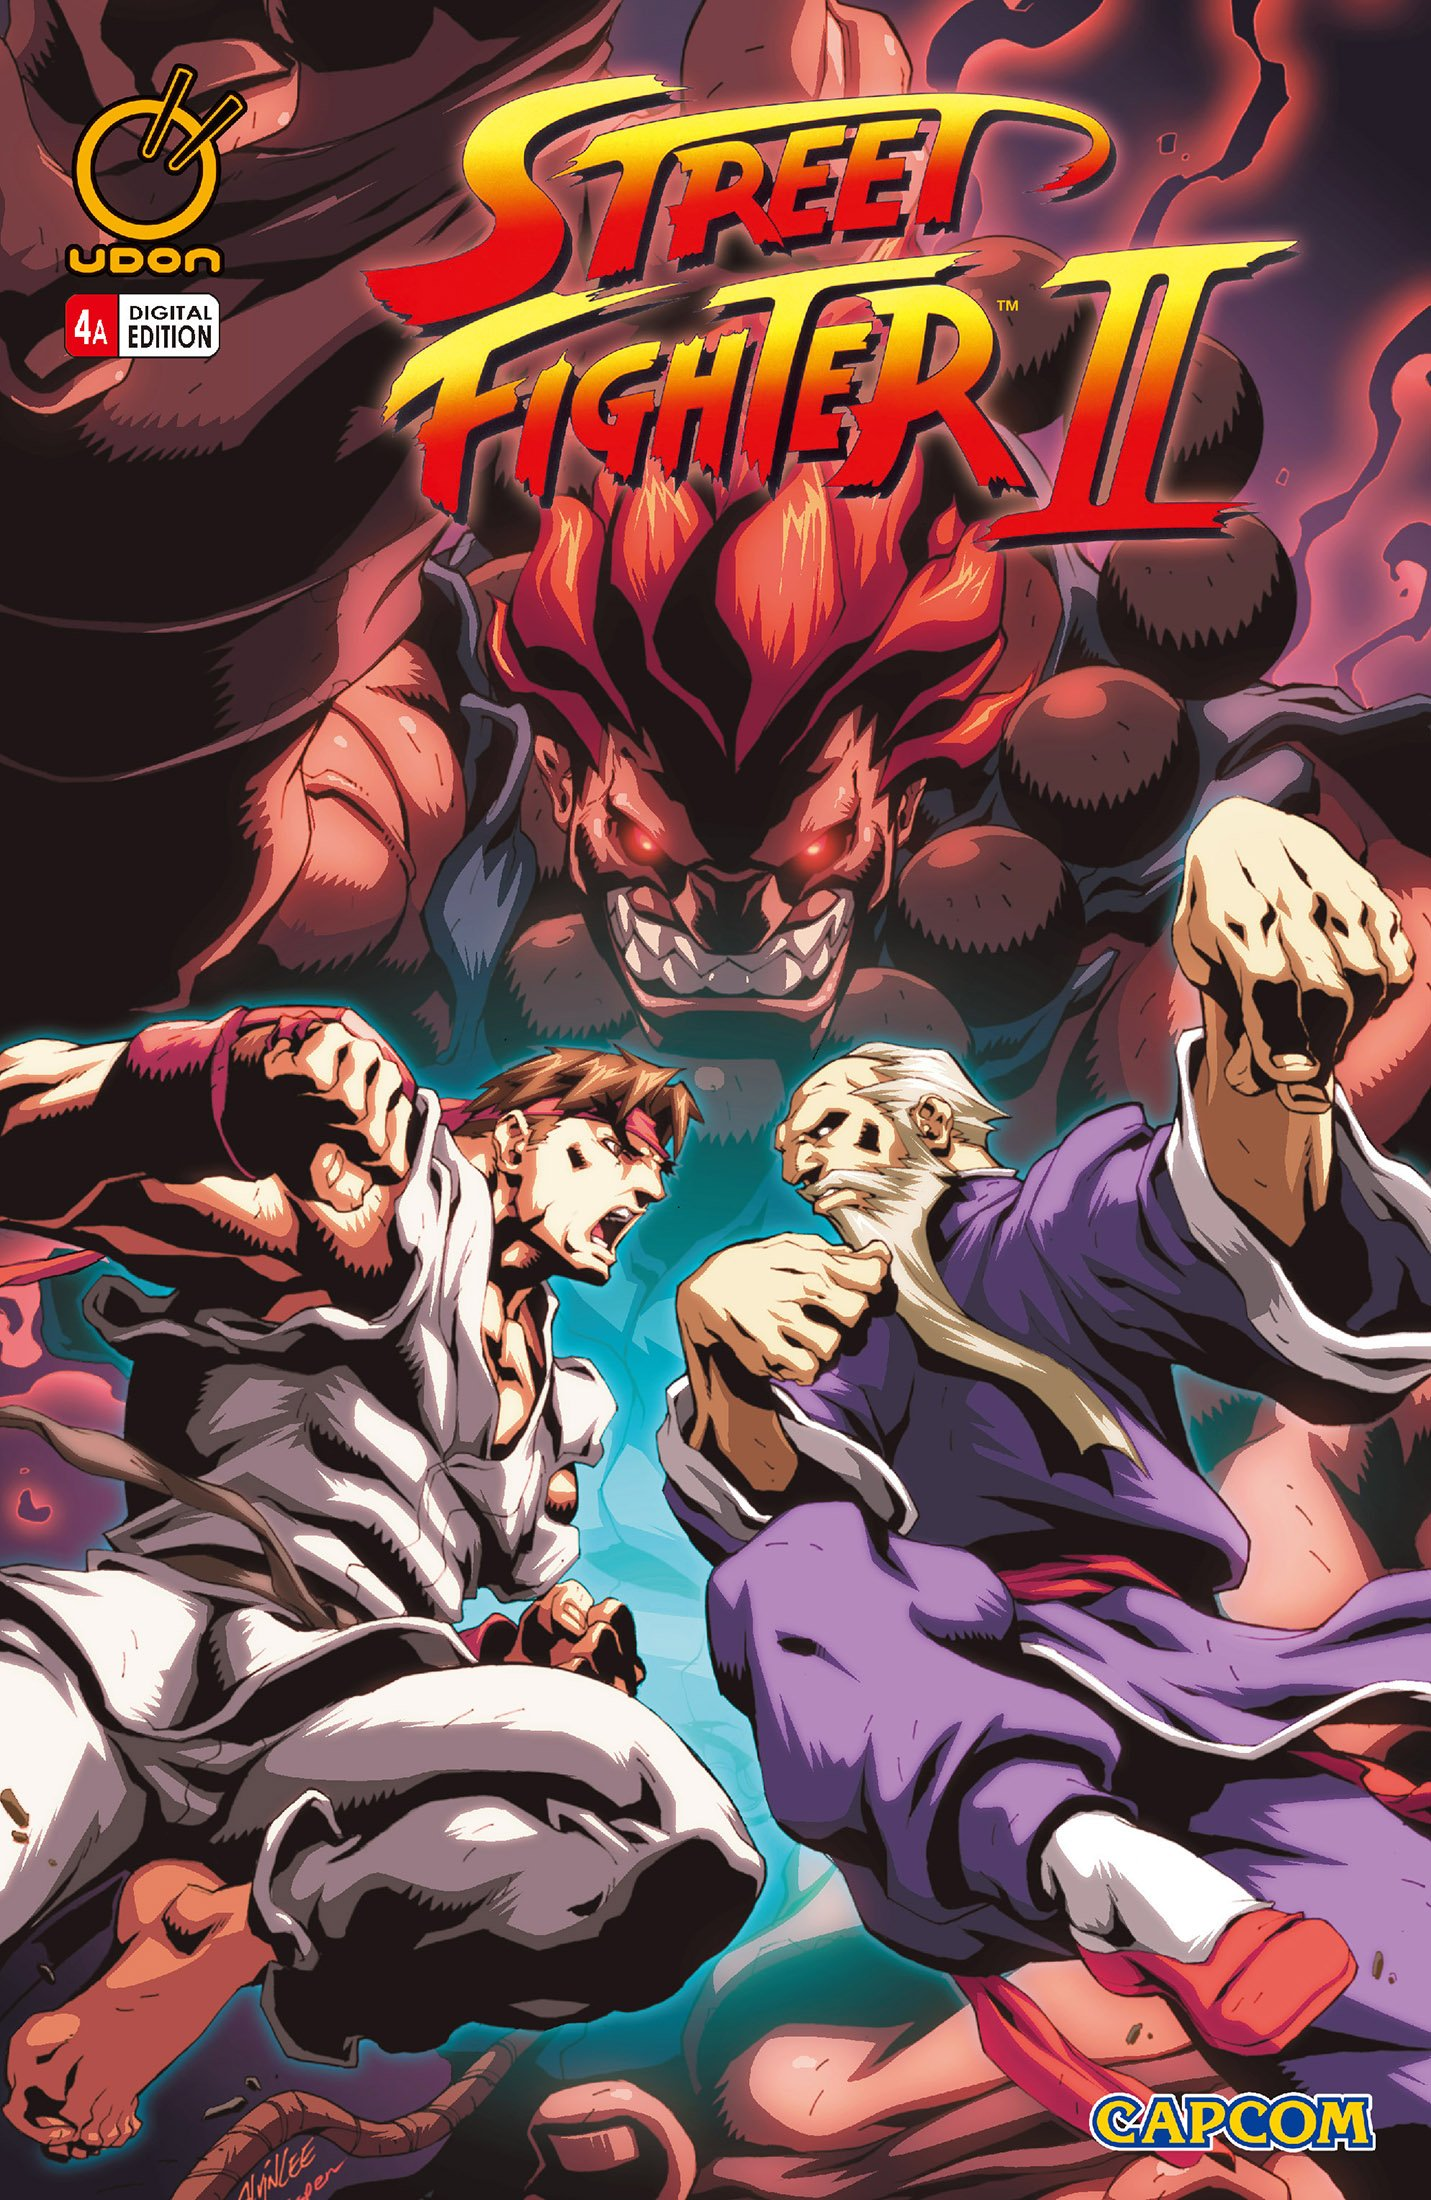 Street Fighter II Issue 4 (May 2006) (cover a)